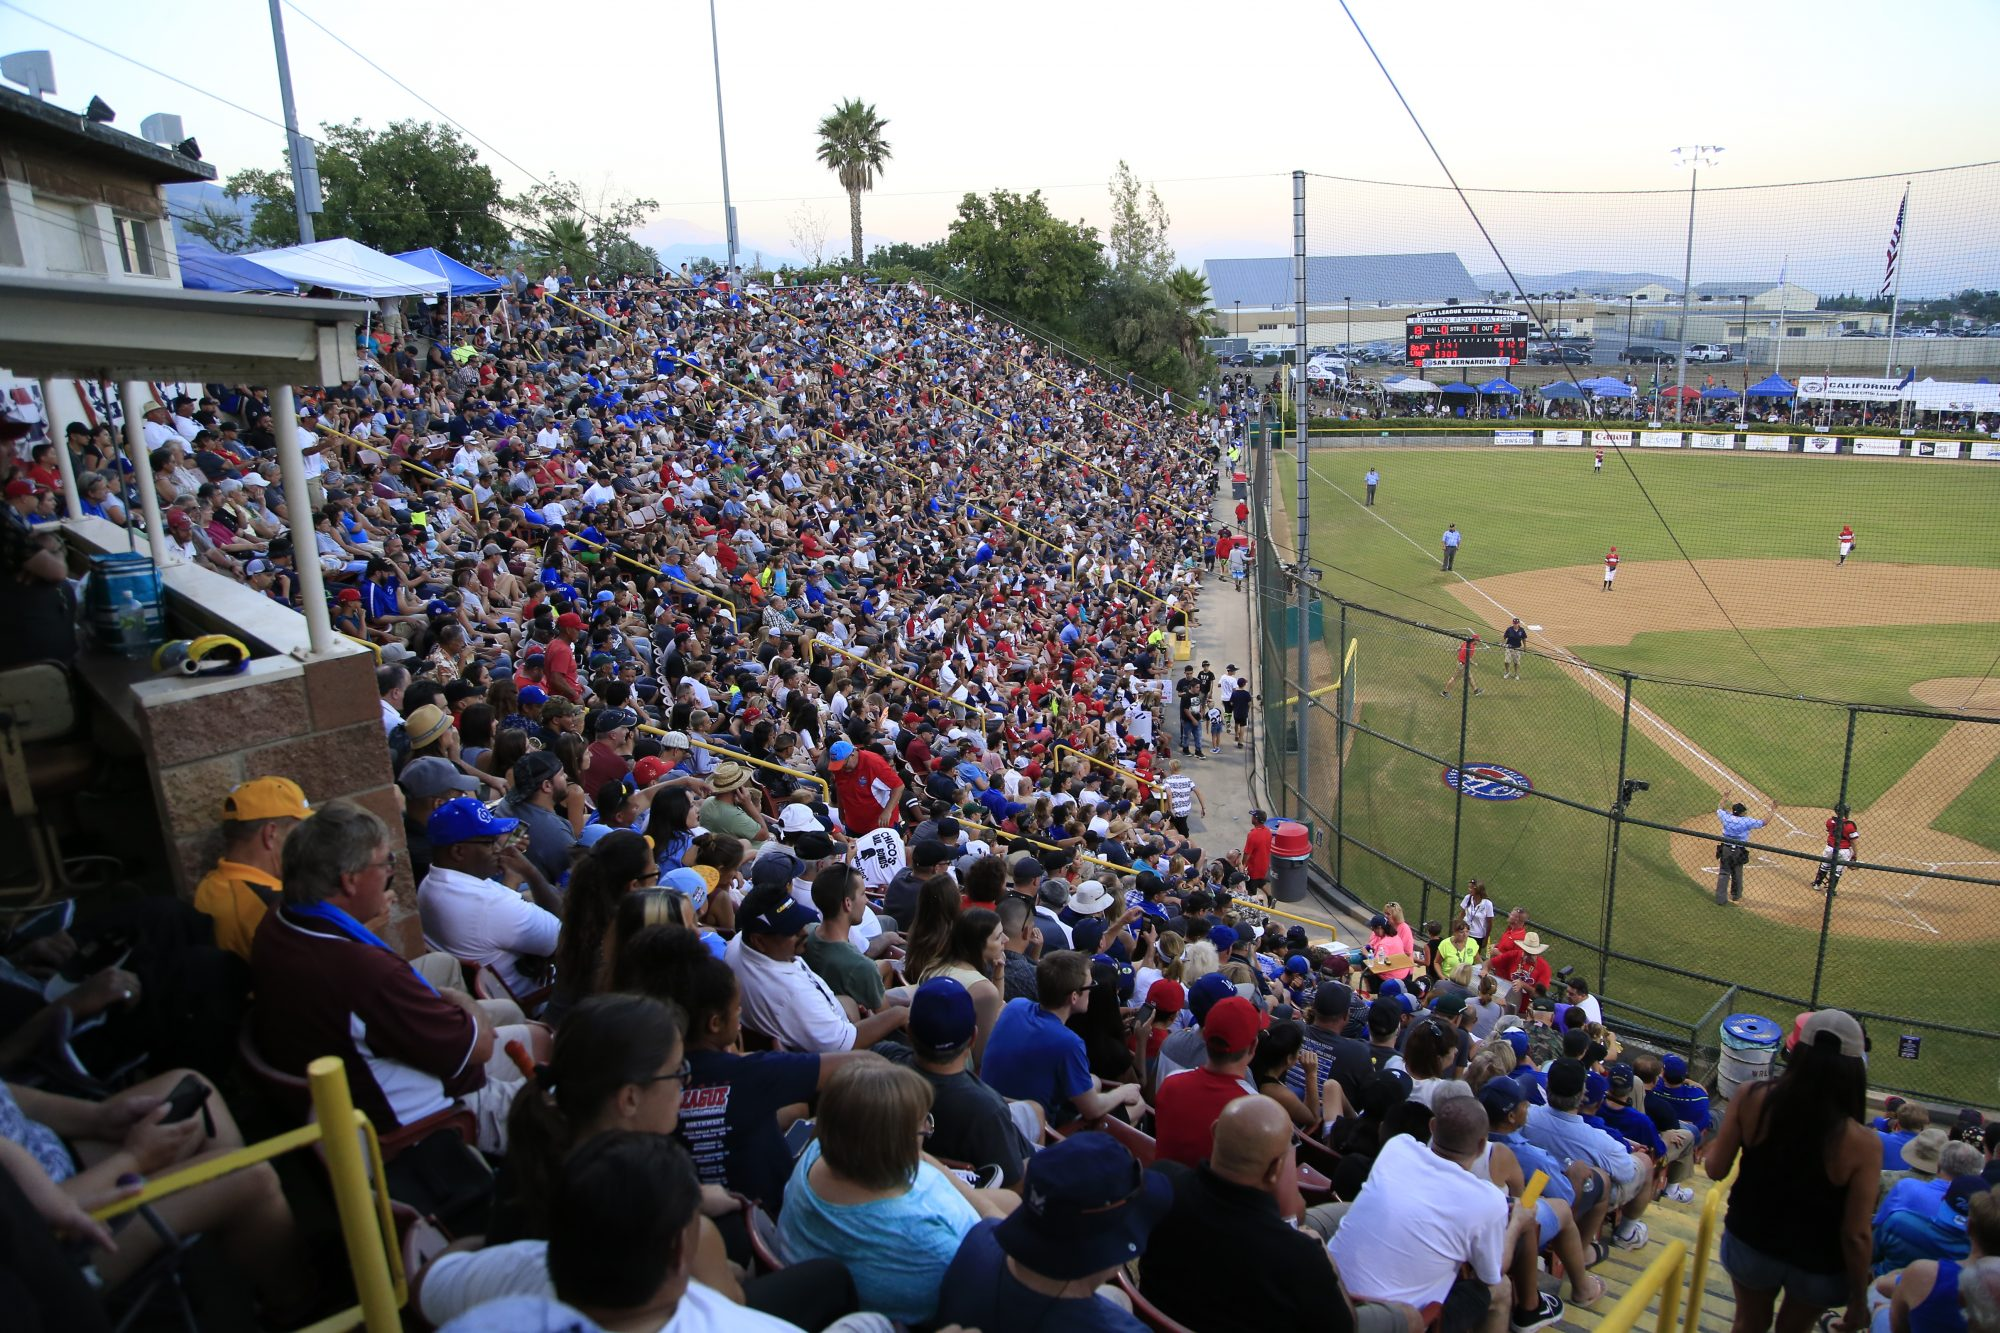 Crowd enjoying the experience at the 2017 Little League Baseball Western Regional Tournament.